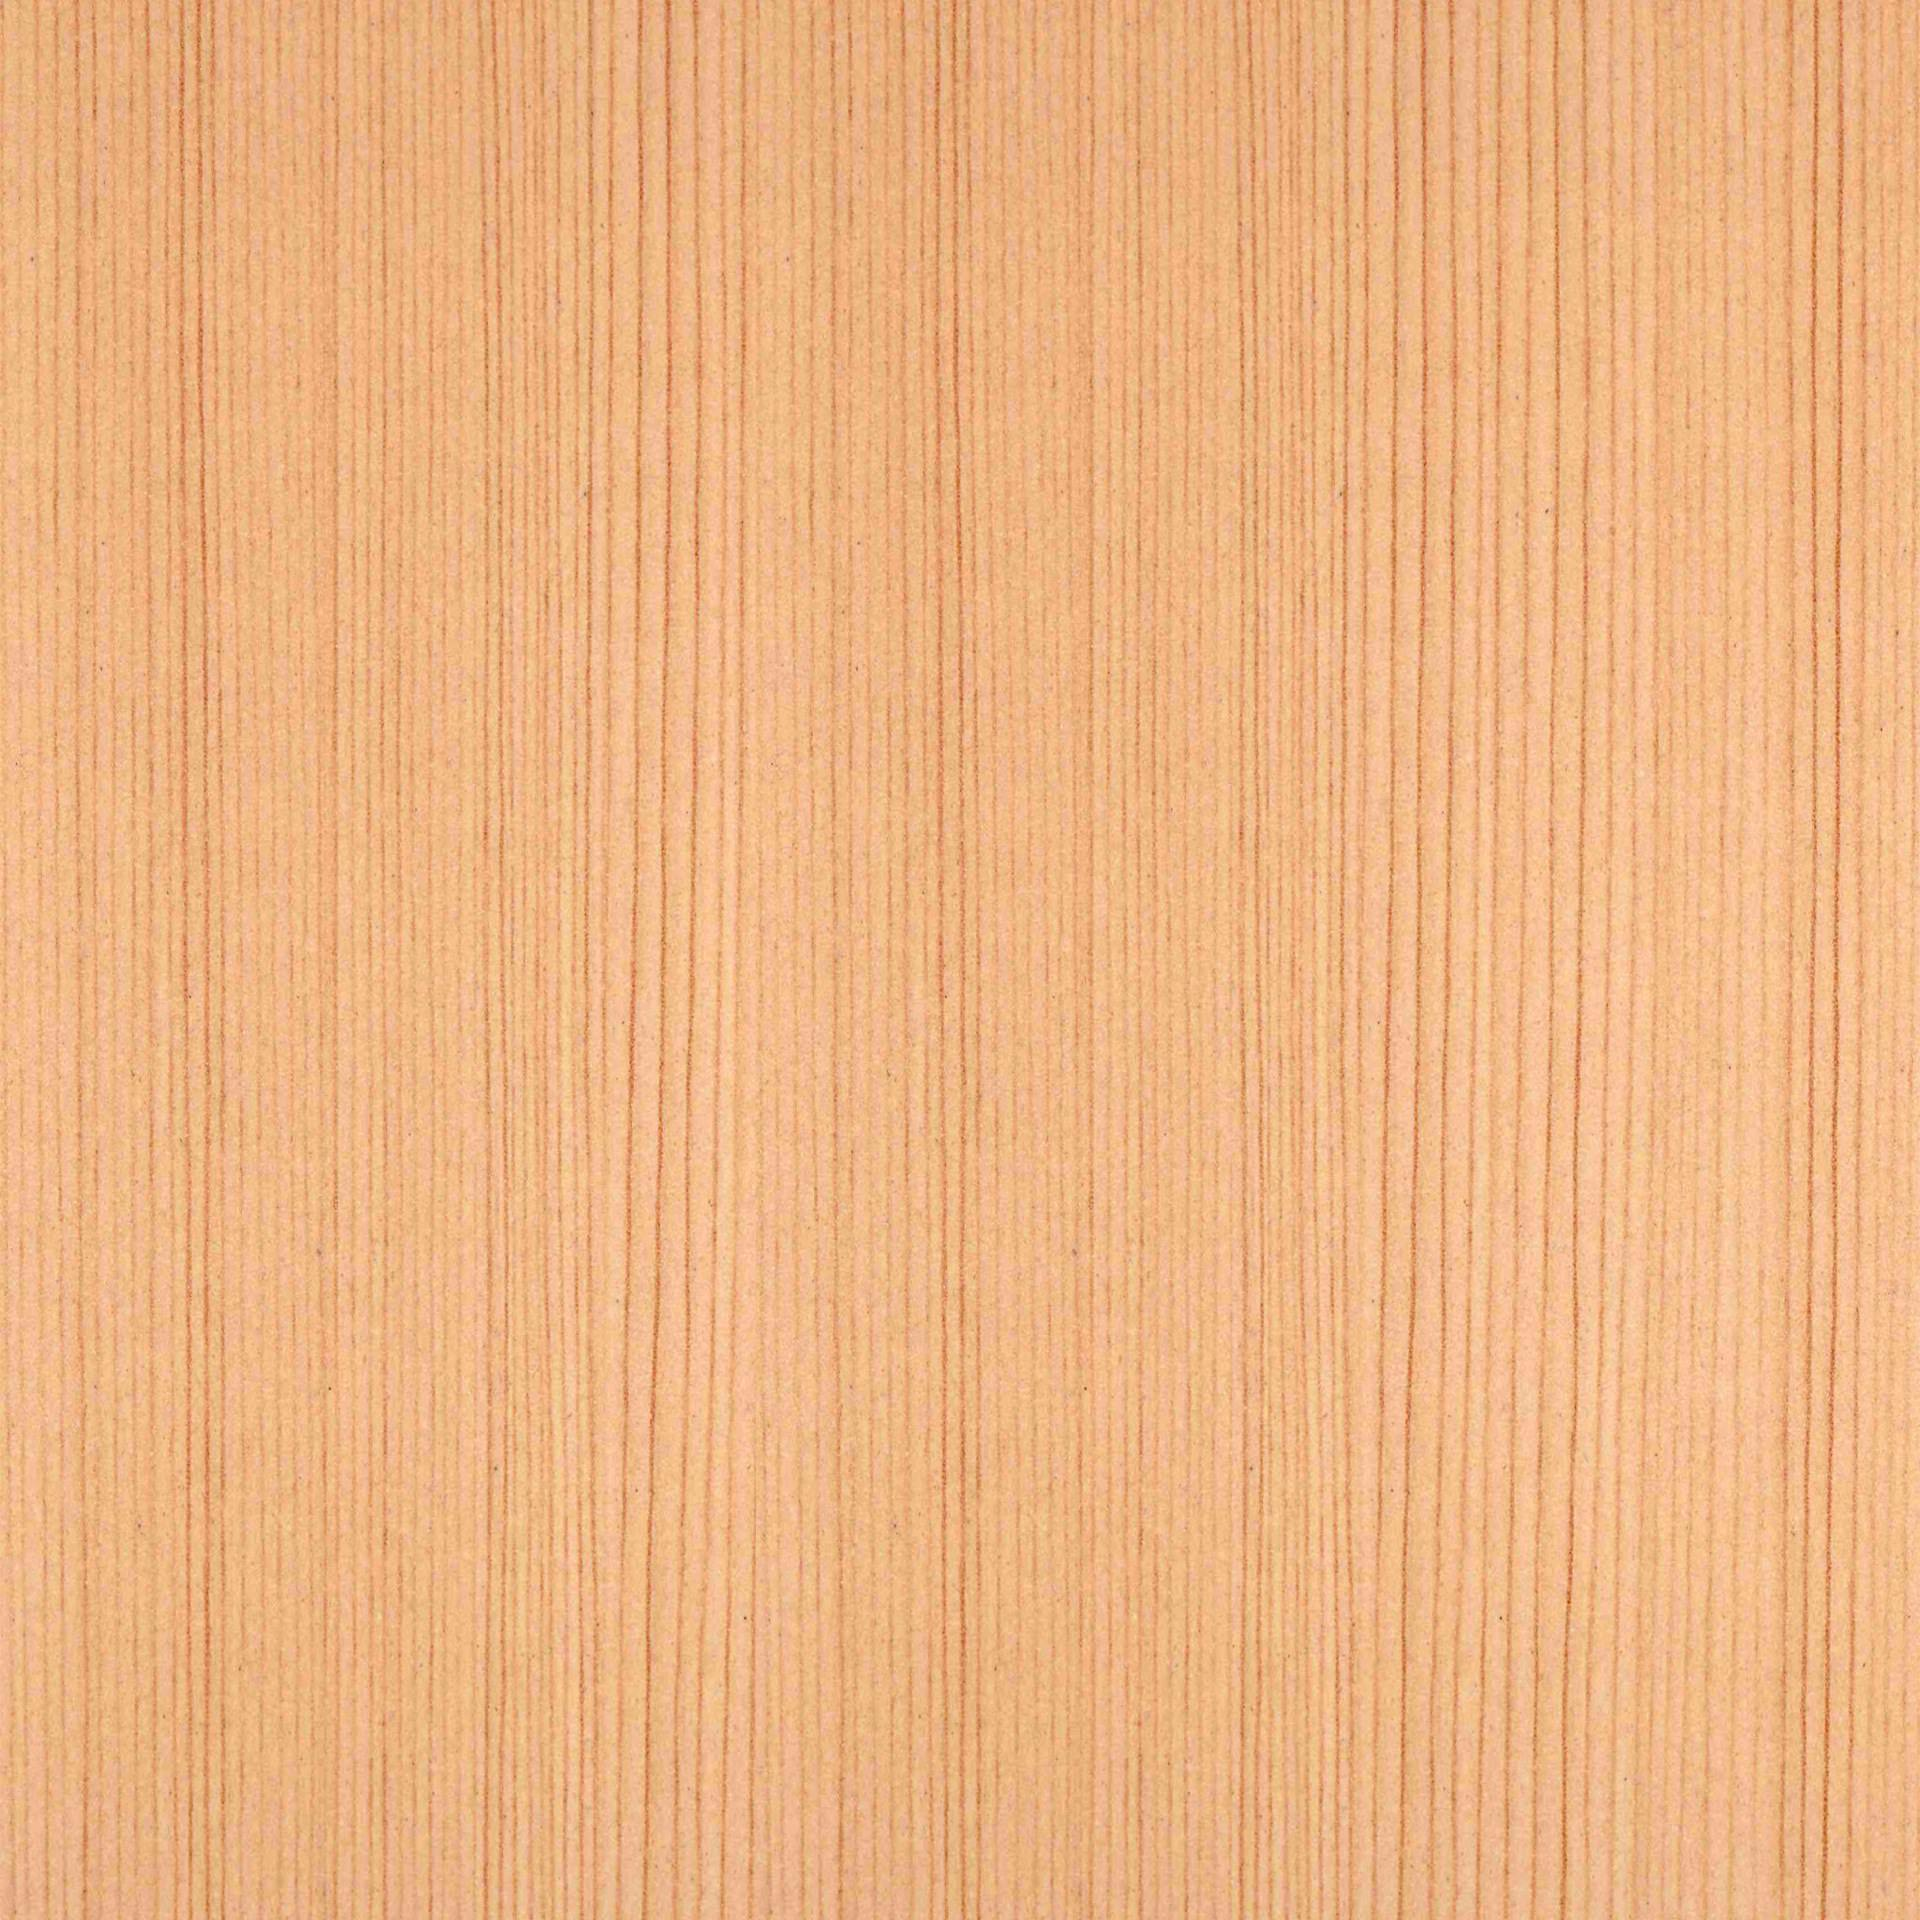 android smart phone wallpaper - Wood Grain Wall Paper